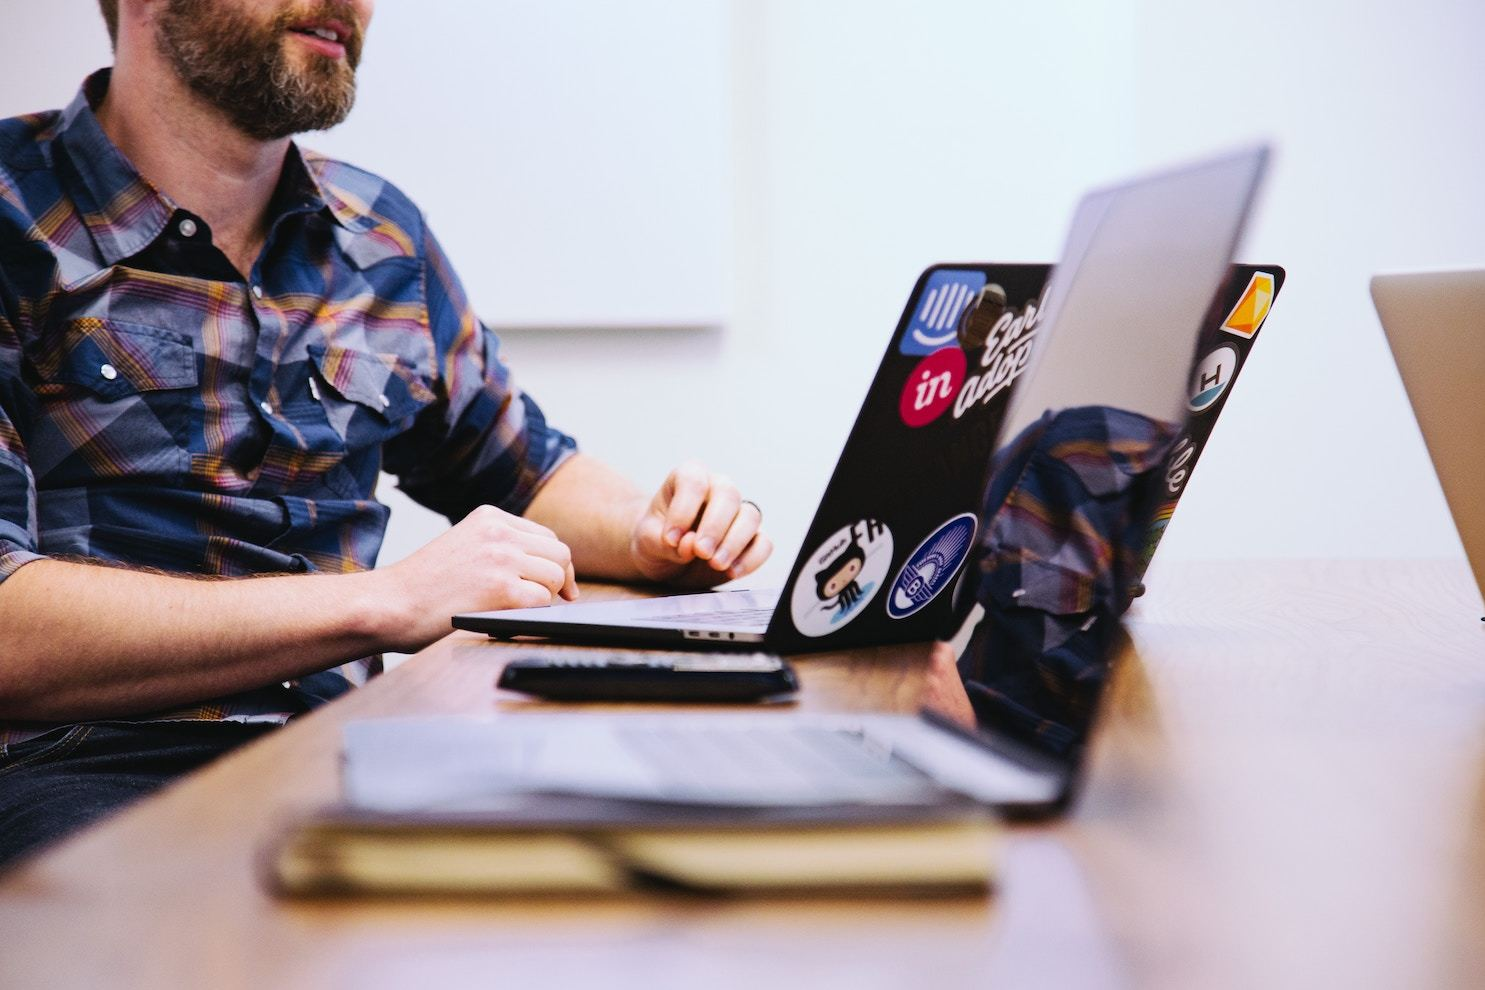 A bearded man in a flannel shirt with a sticker-covered laptop